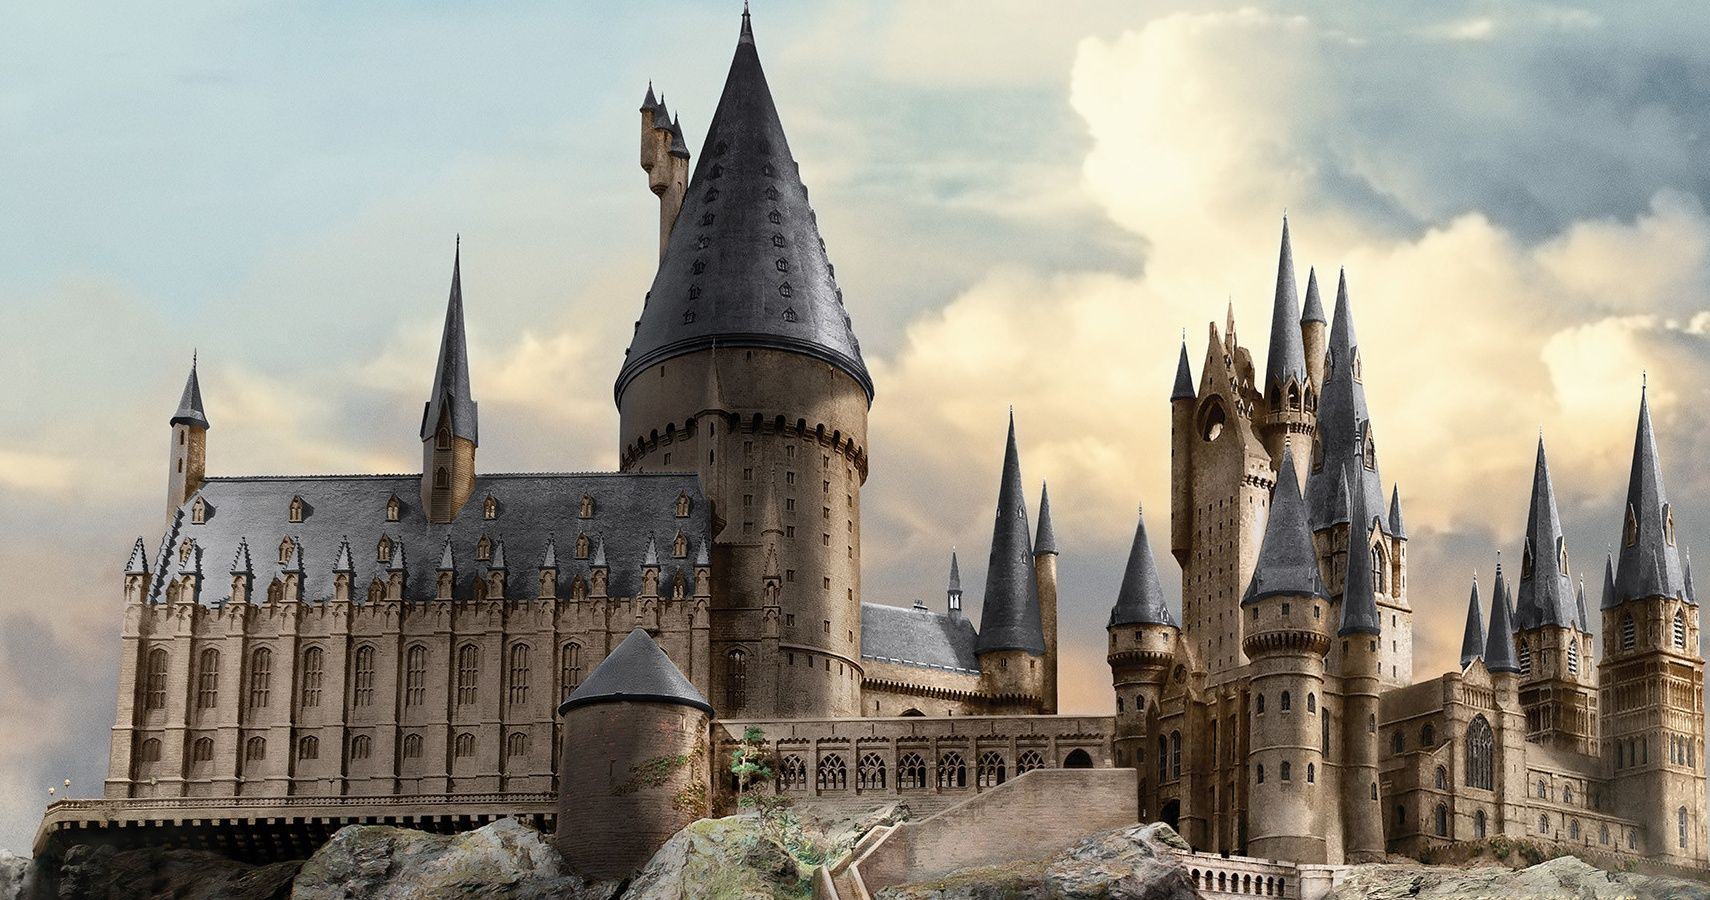 Wizarding World's Day by Day: 3rd of September